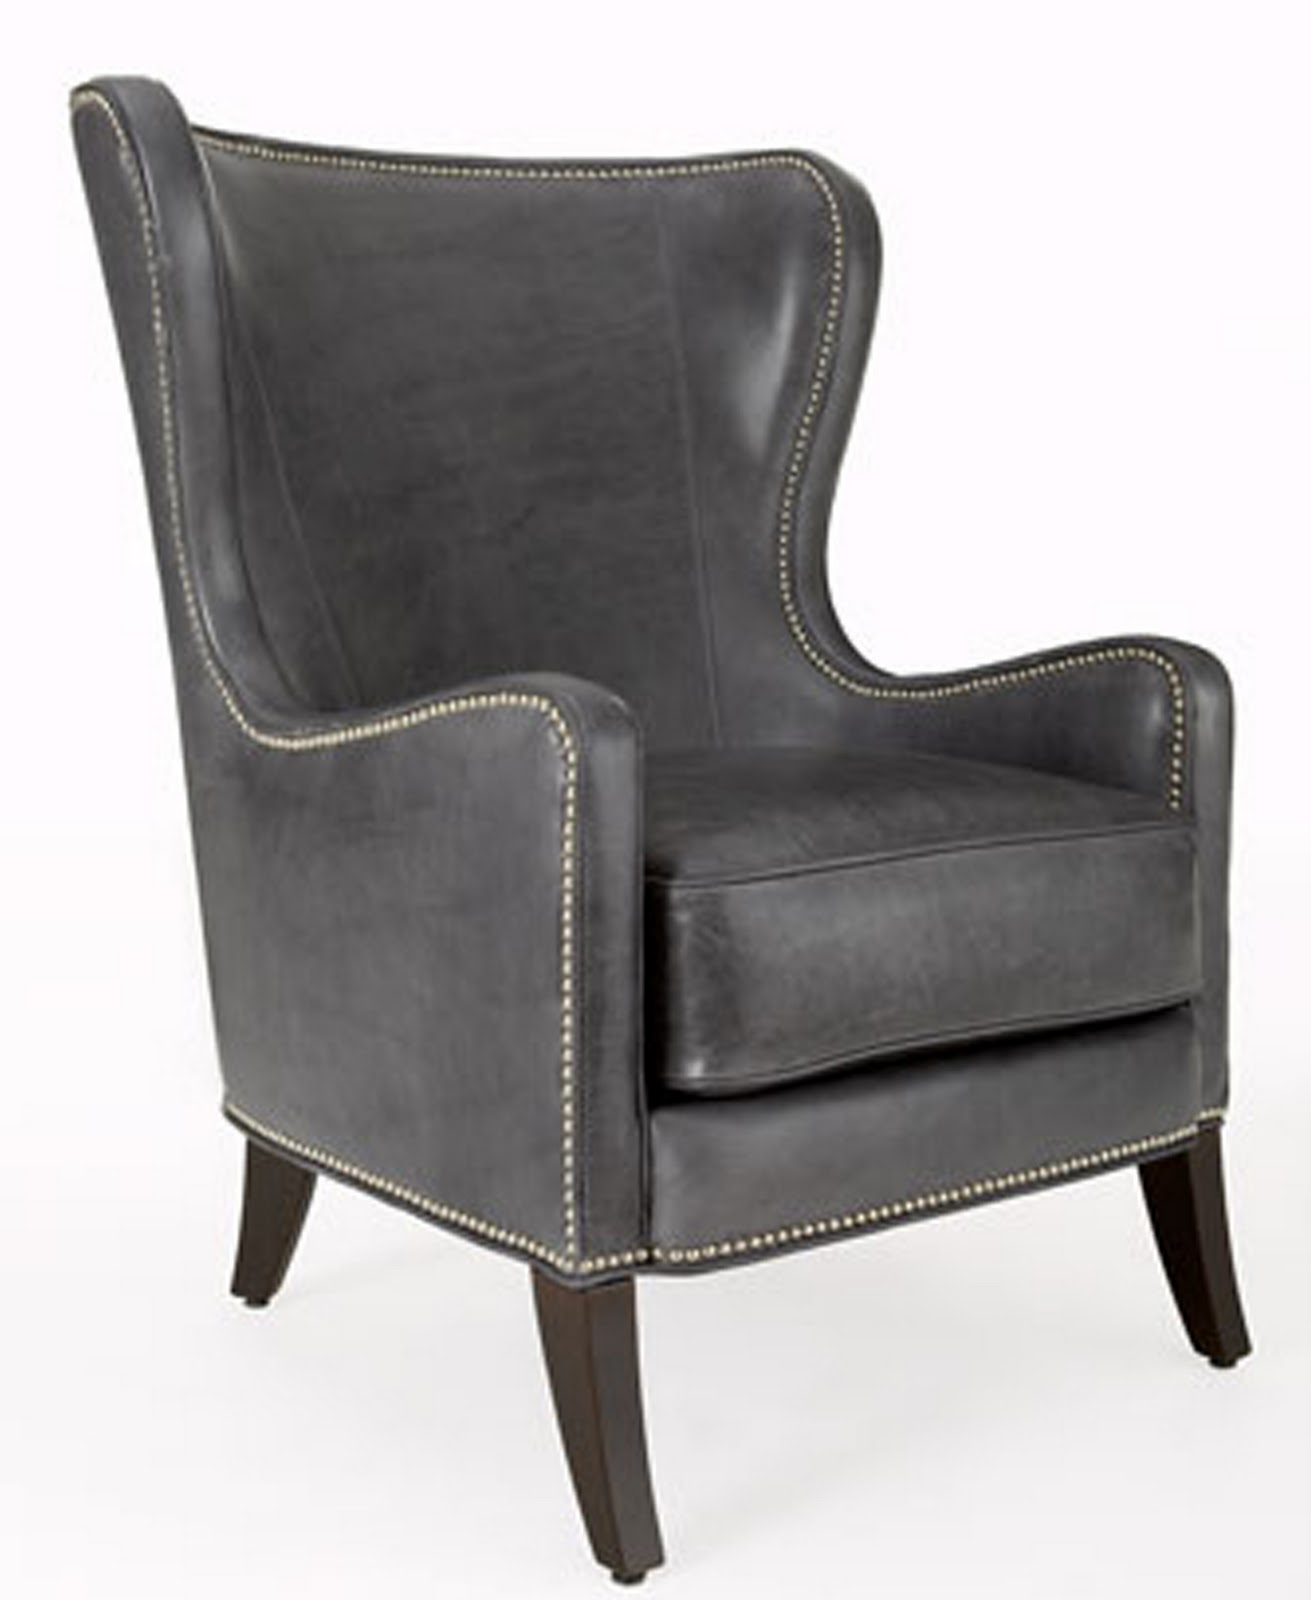 Leather chair has hardwood frame and nailhead trim